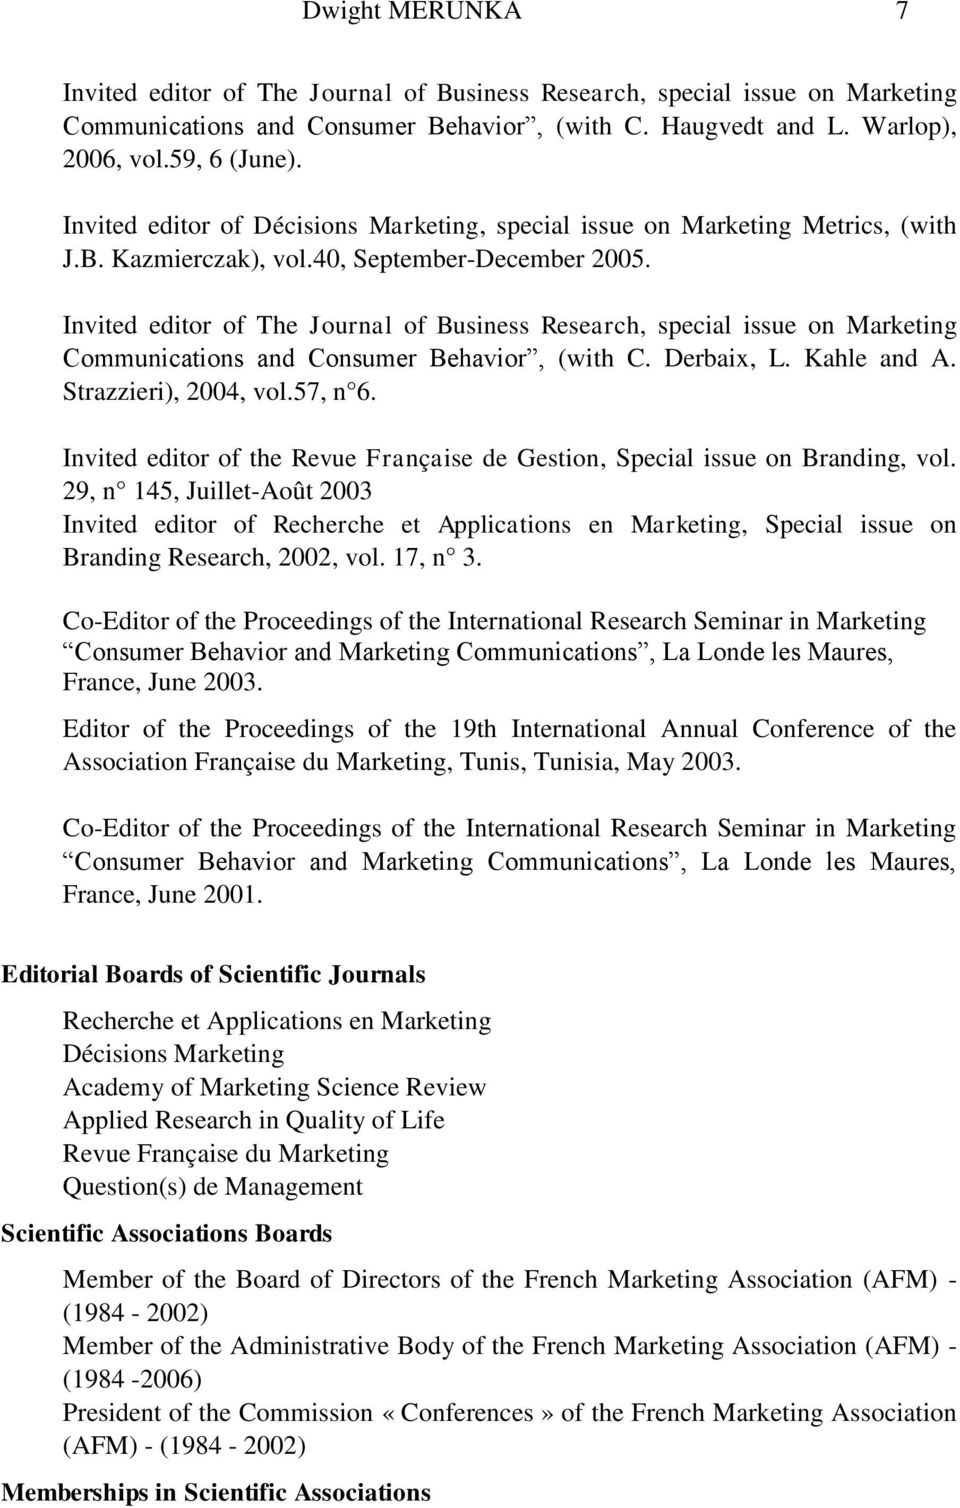 Invited editor of The Journal of Business Research, special issue on Marketing Communications and Consumer Behavior, (with C. Derbaix, L. Kahle and A. Strazzieri), 2004, vol.57, n 6.